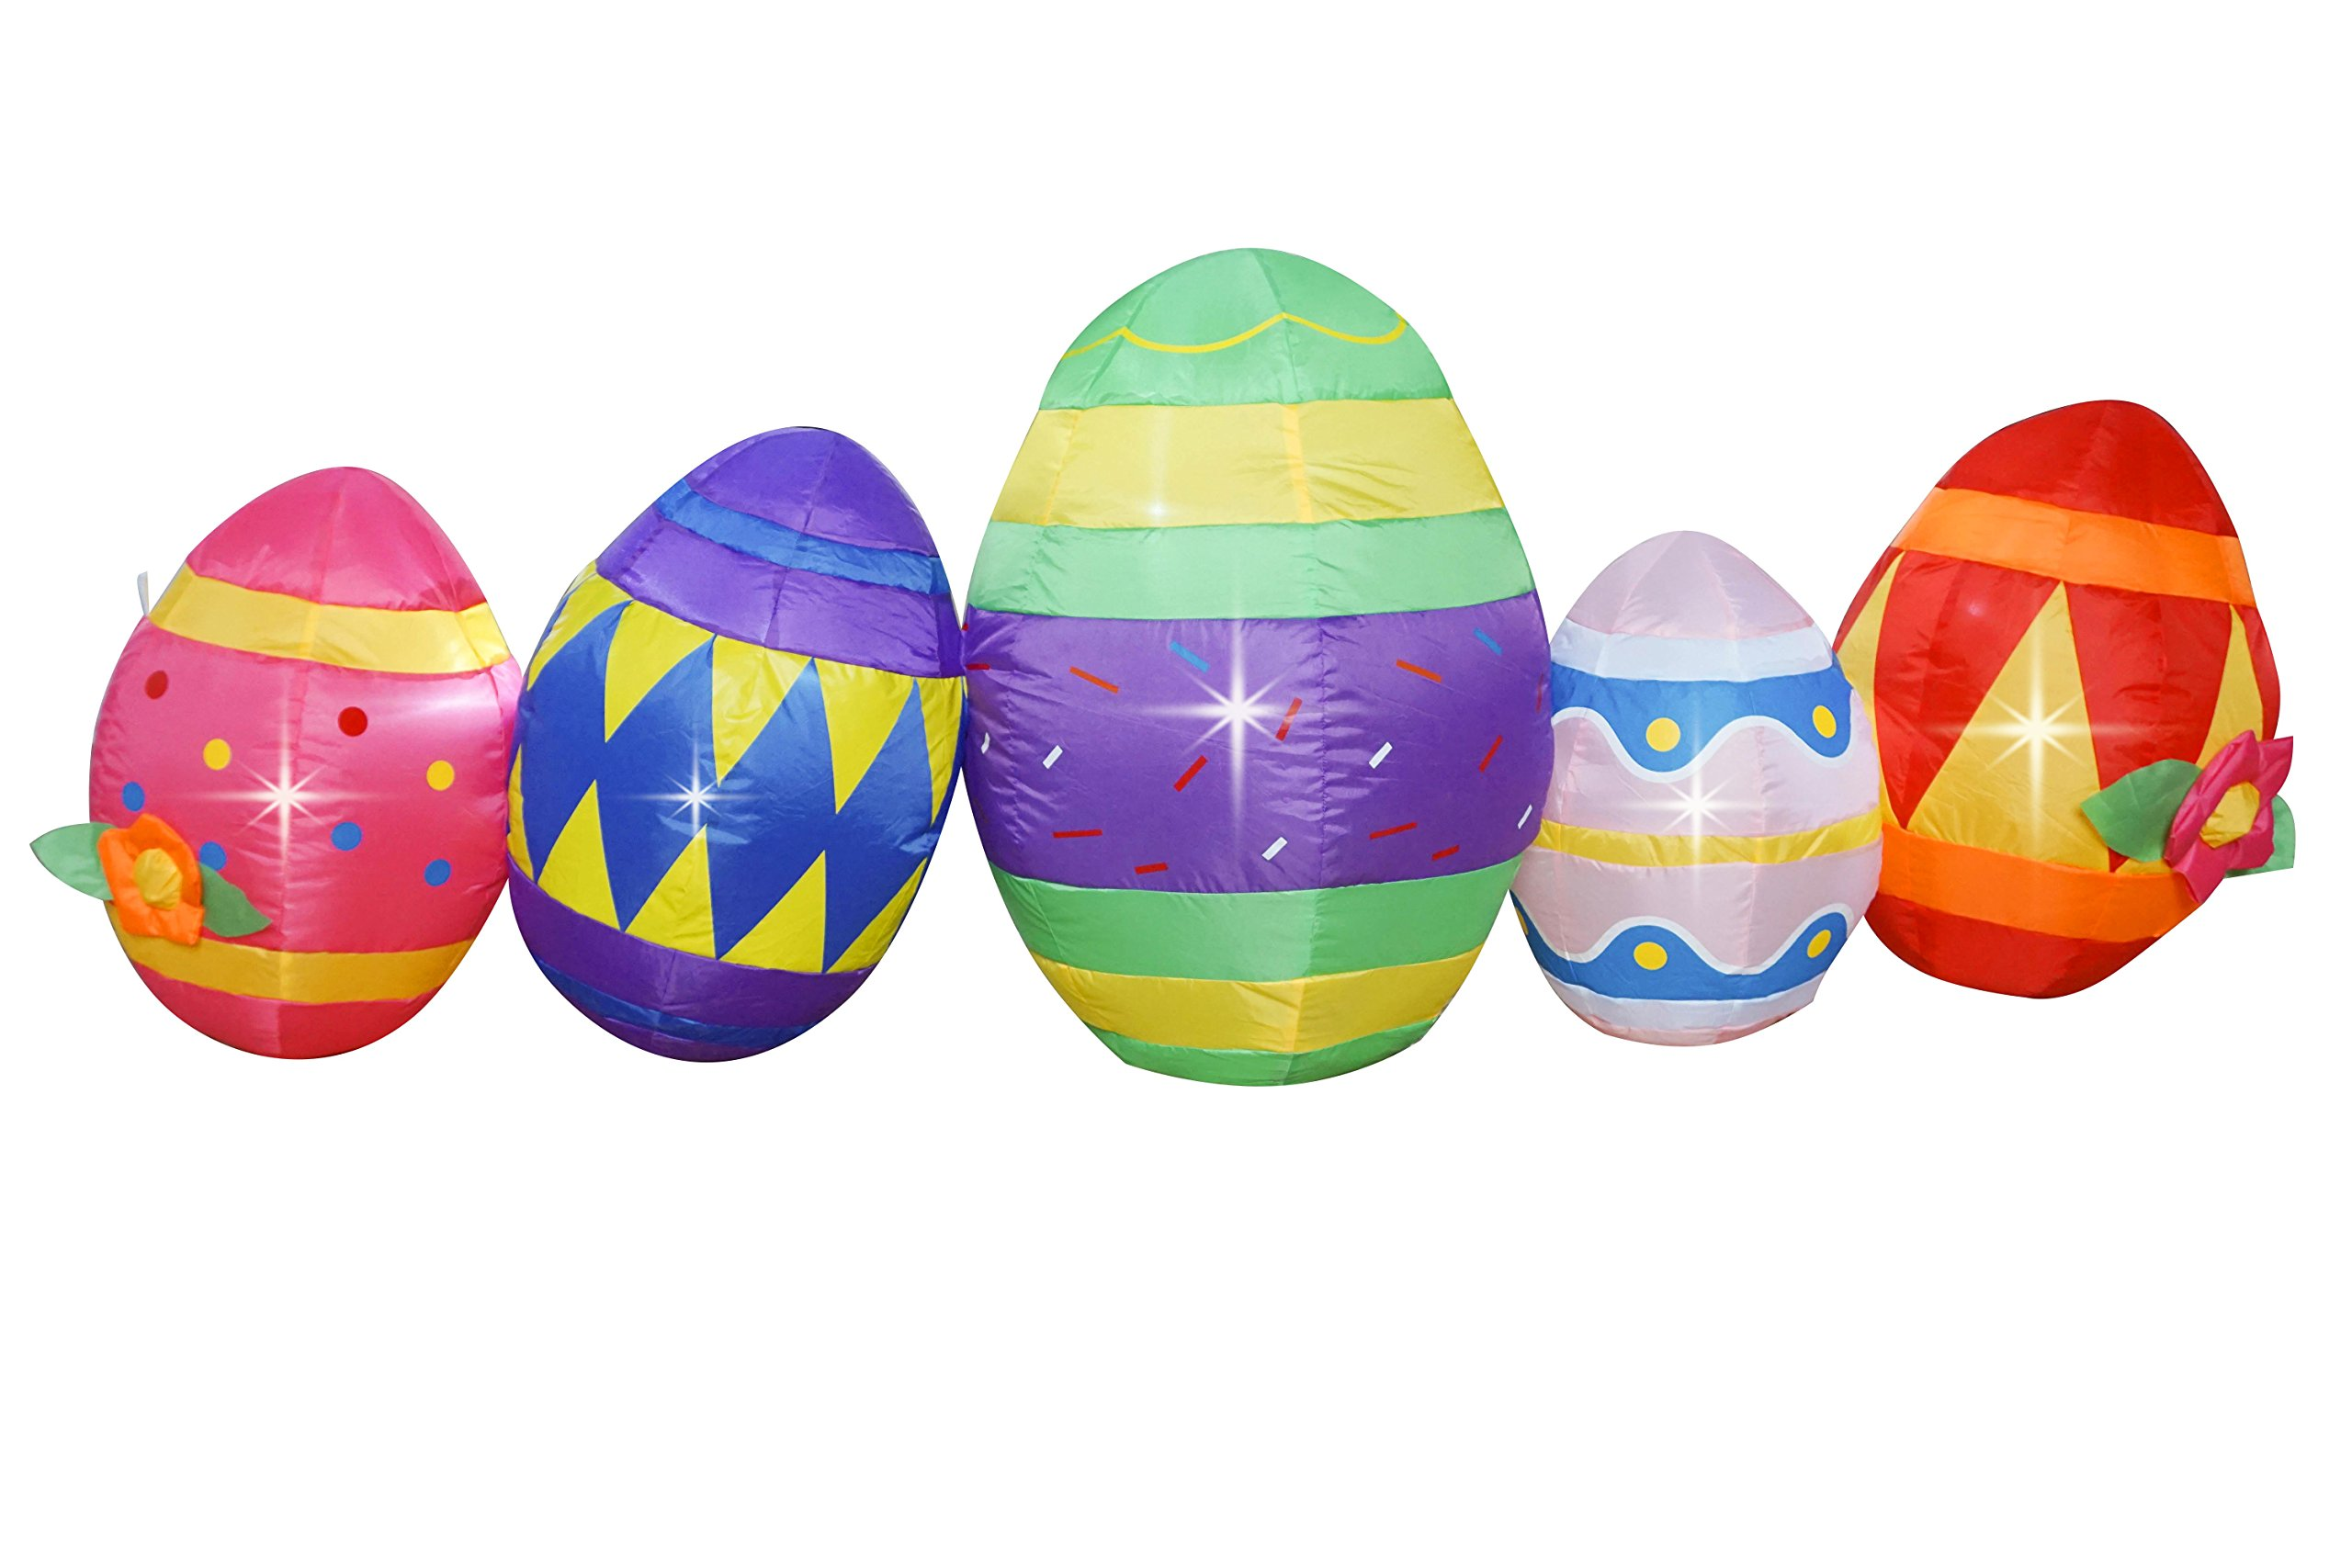 BIGJOYS SEASONBLOW 6 Ft Lighted Easter Egg Inflatable Eggs Decoration for Indoor Outdoor Home Yard Lawn Decor